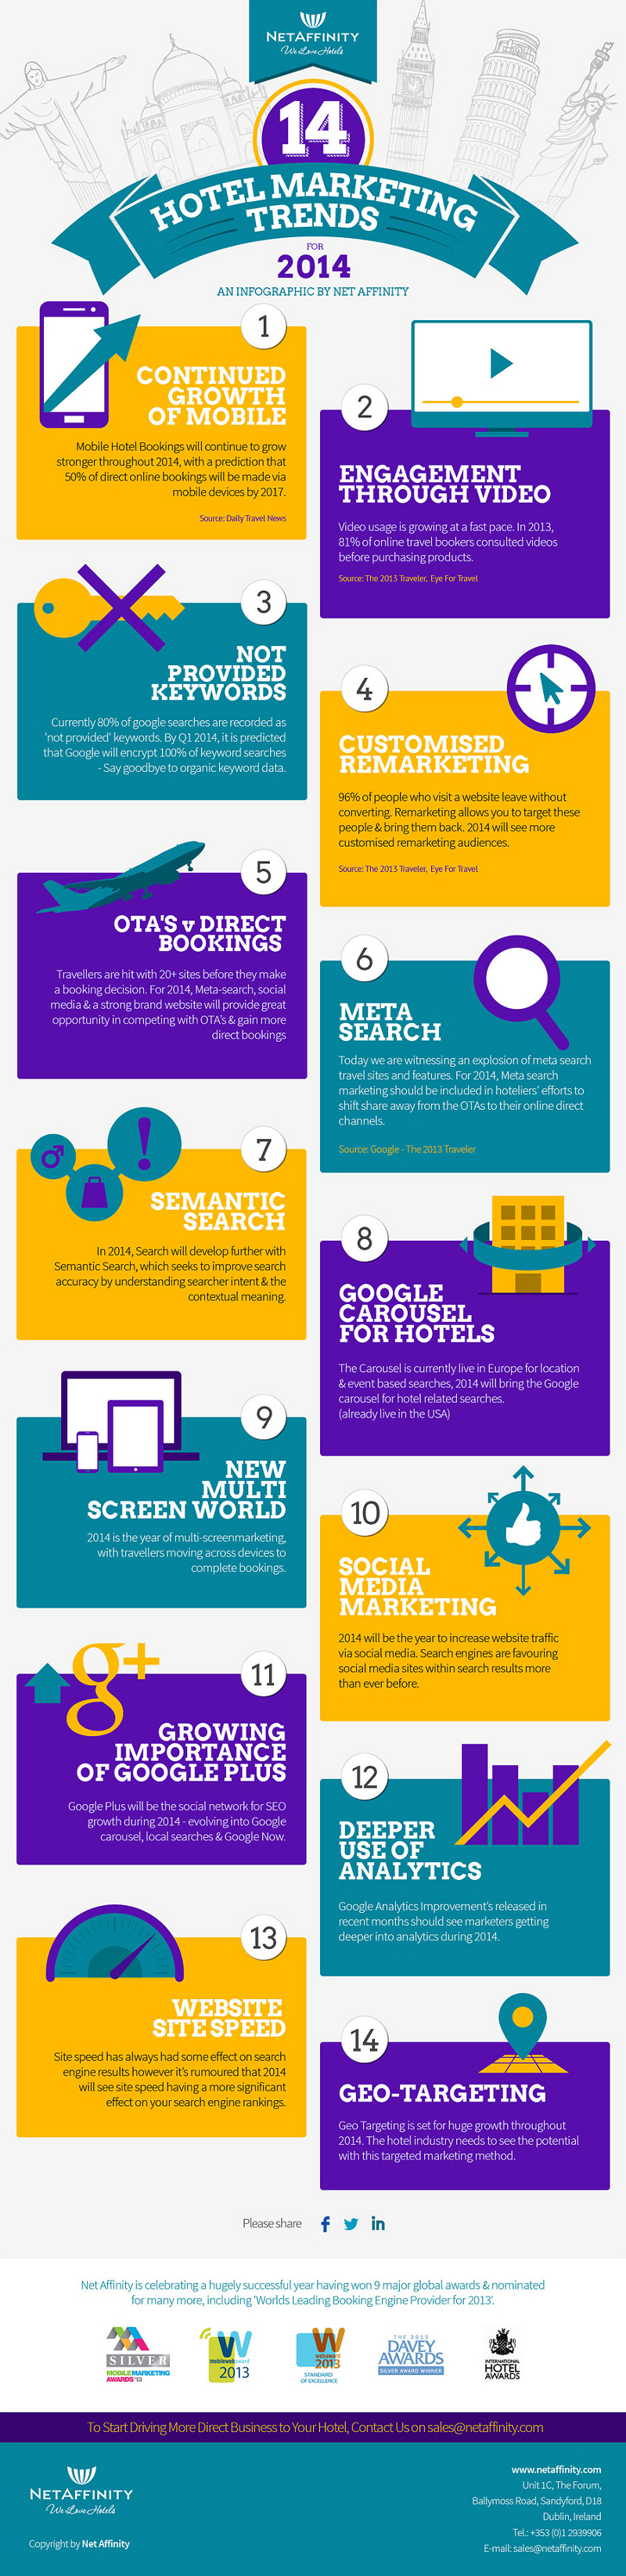 Hotel Marketing Trends for 2014